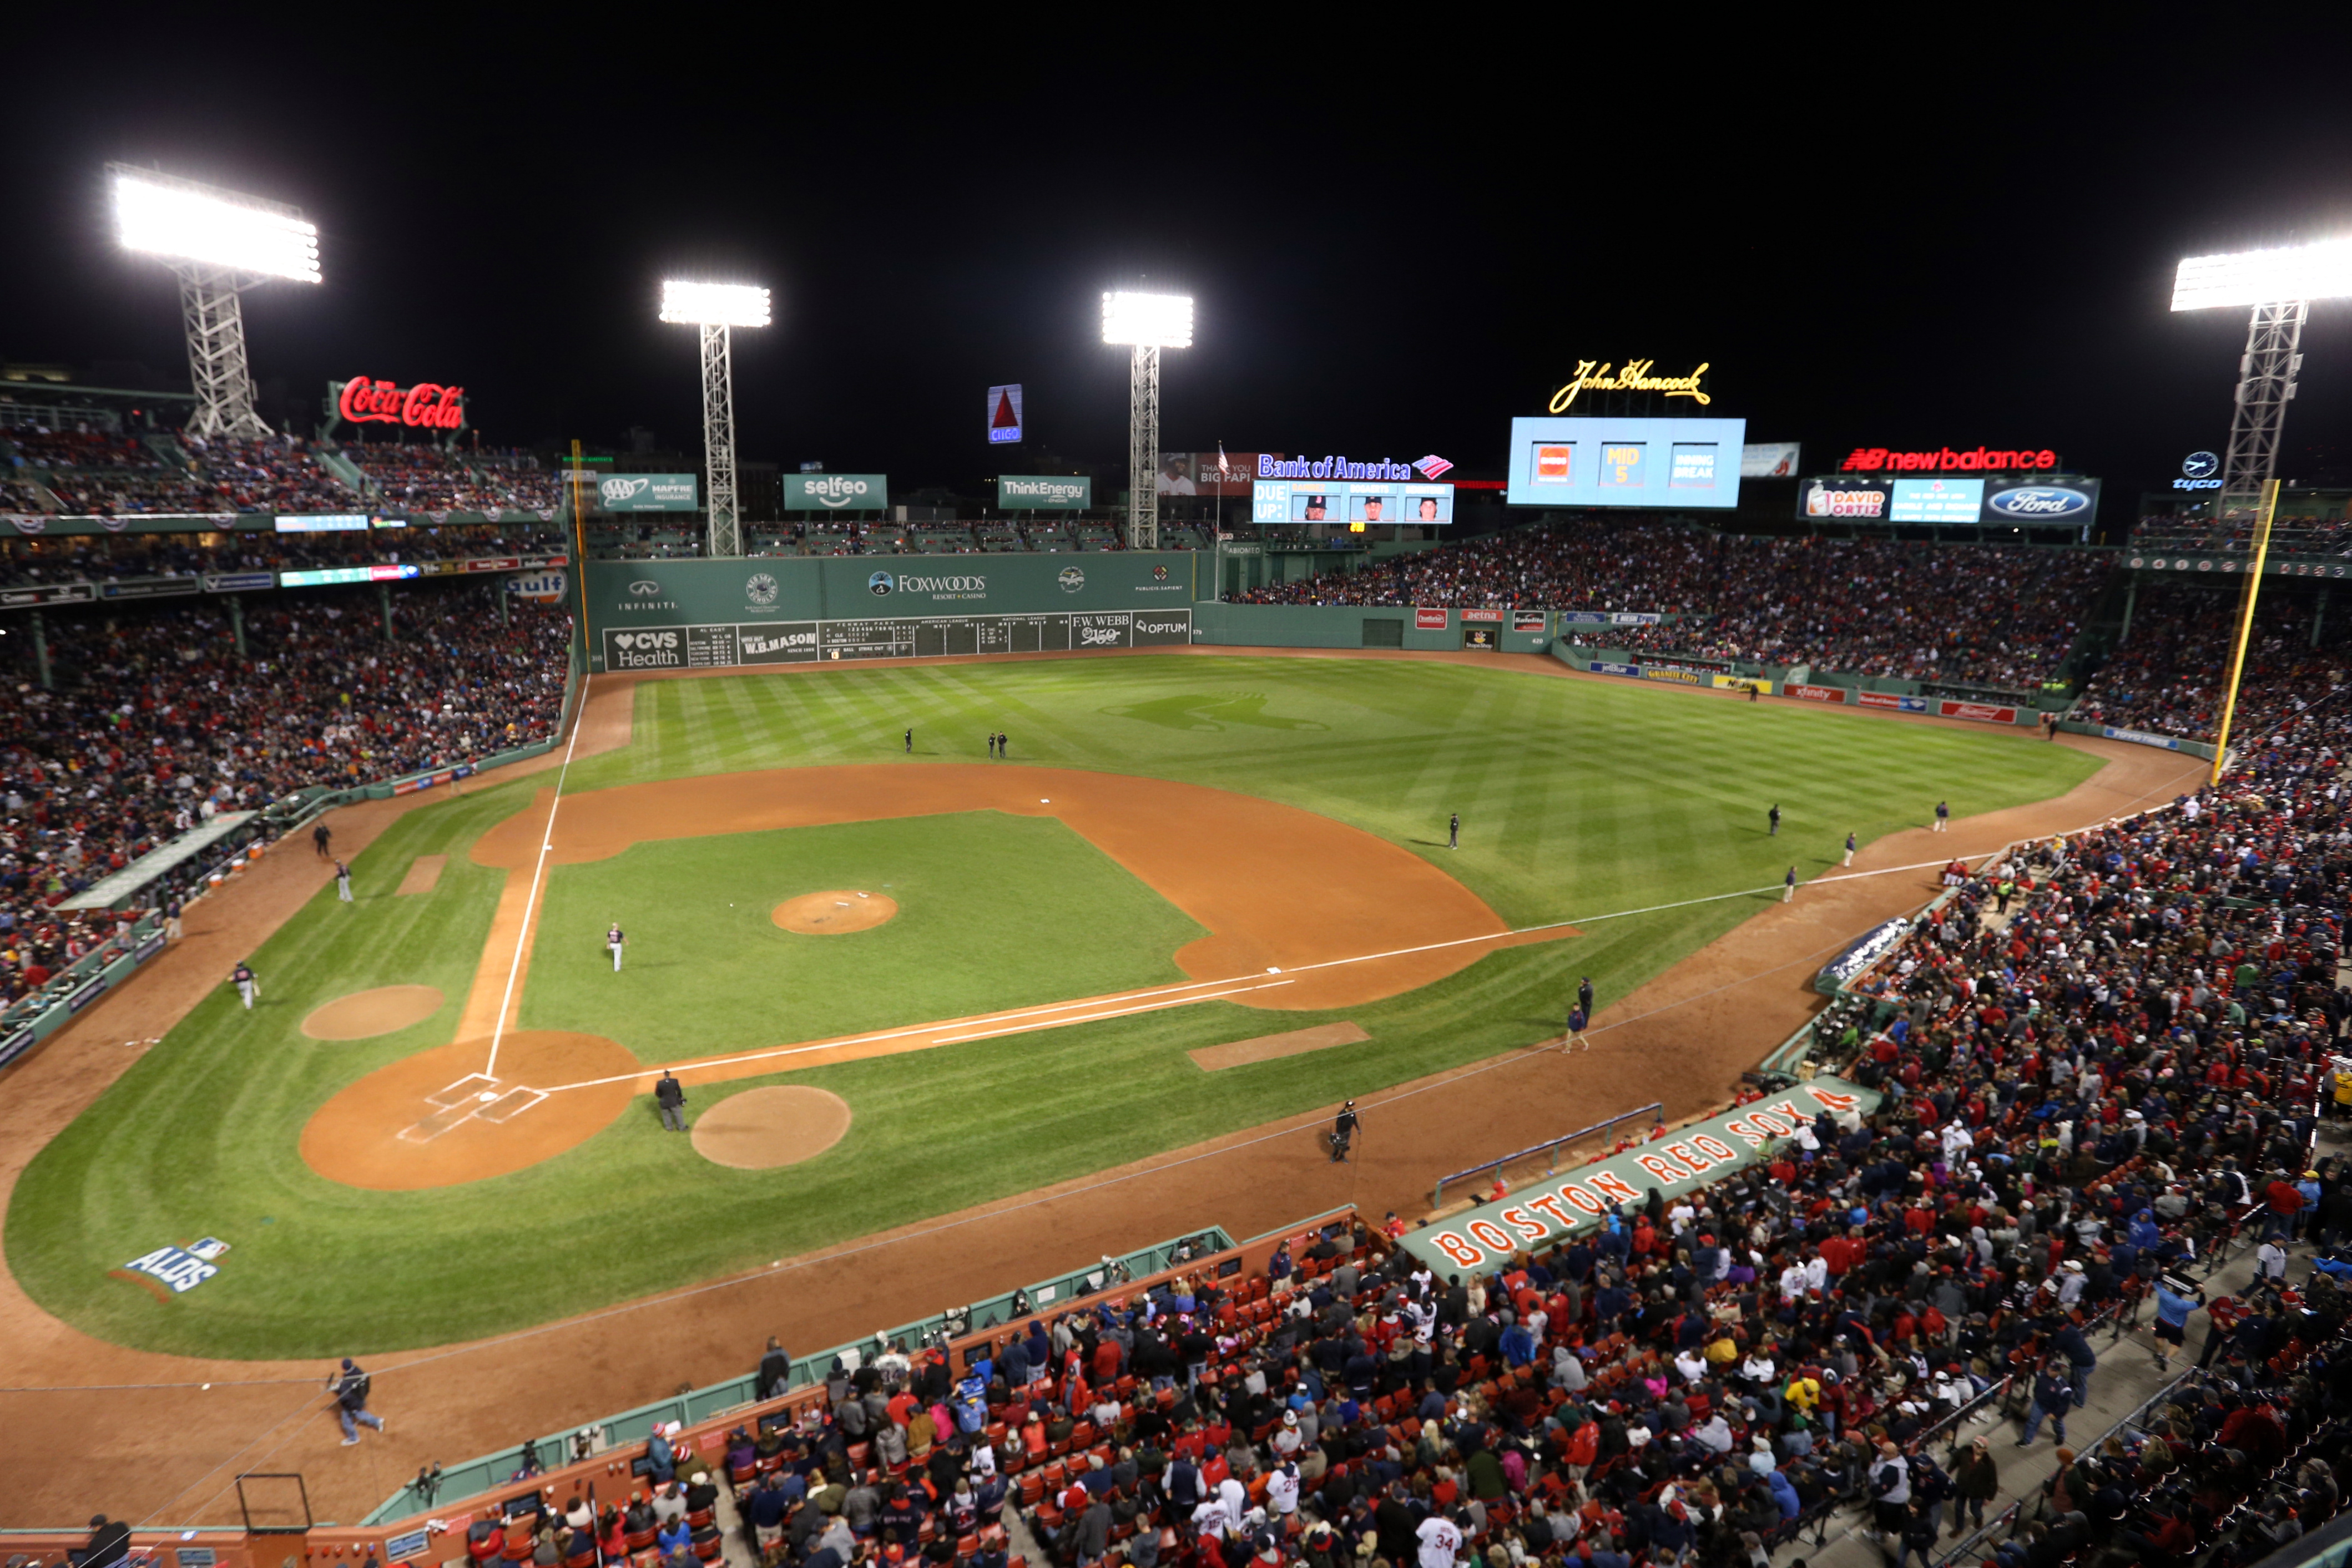 BOSTON, MA - OCTOBER 10:  A general view of Fenway Park during Game 3 of ALDS between the Cleveland Indians and the Boston Red Sox at Fenway Park on Monday, October 10, 2016 in Boston, Massachusetts. (Photo by Rob Tringali/MLB Photos via Getty Images)